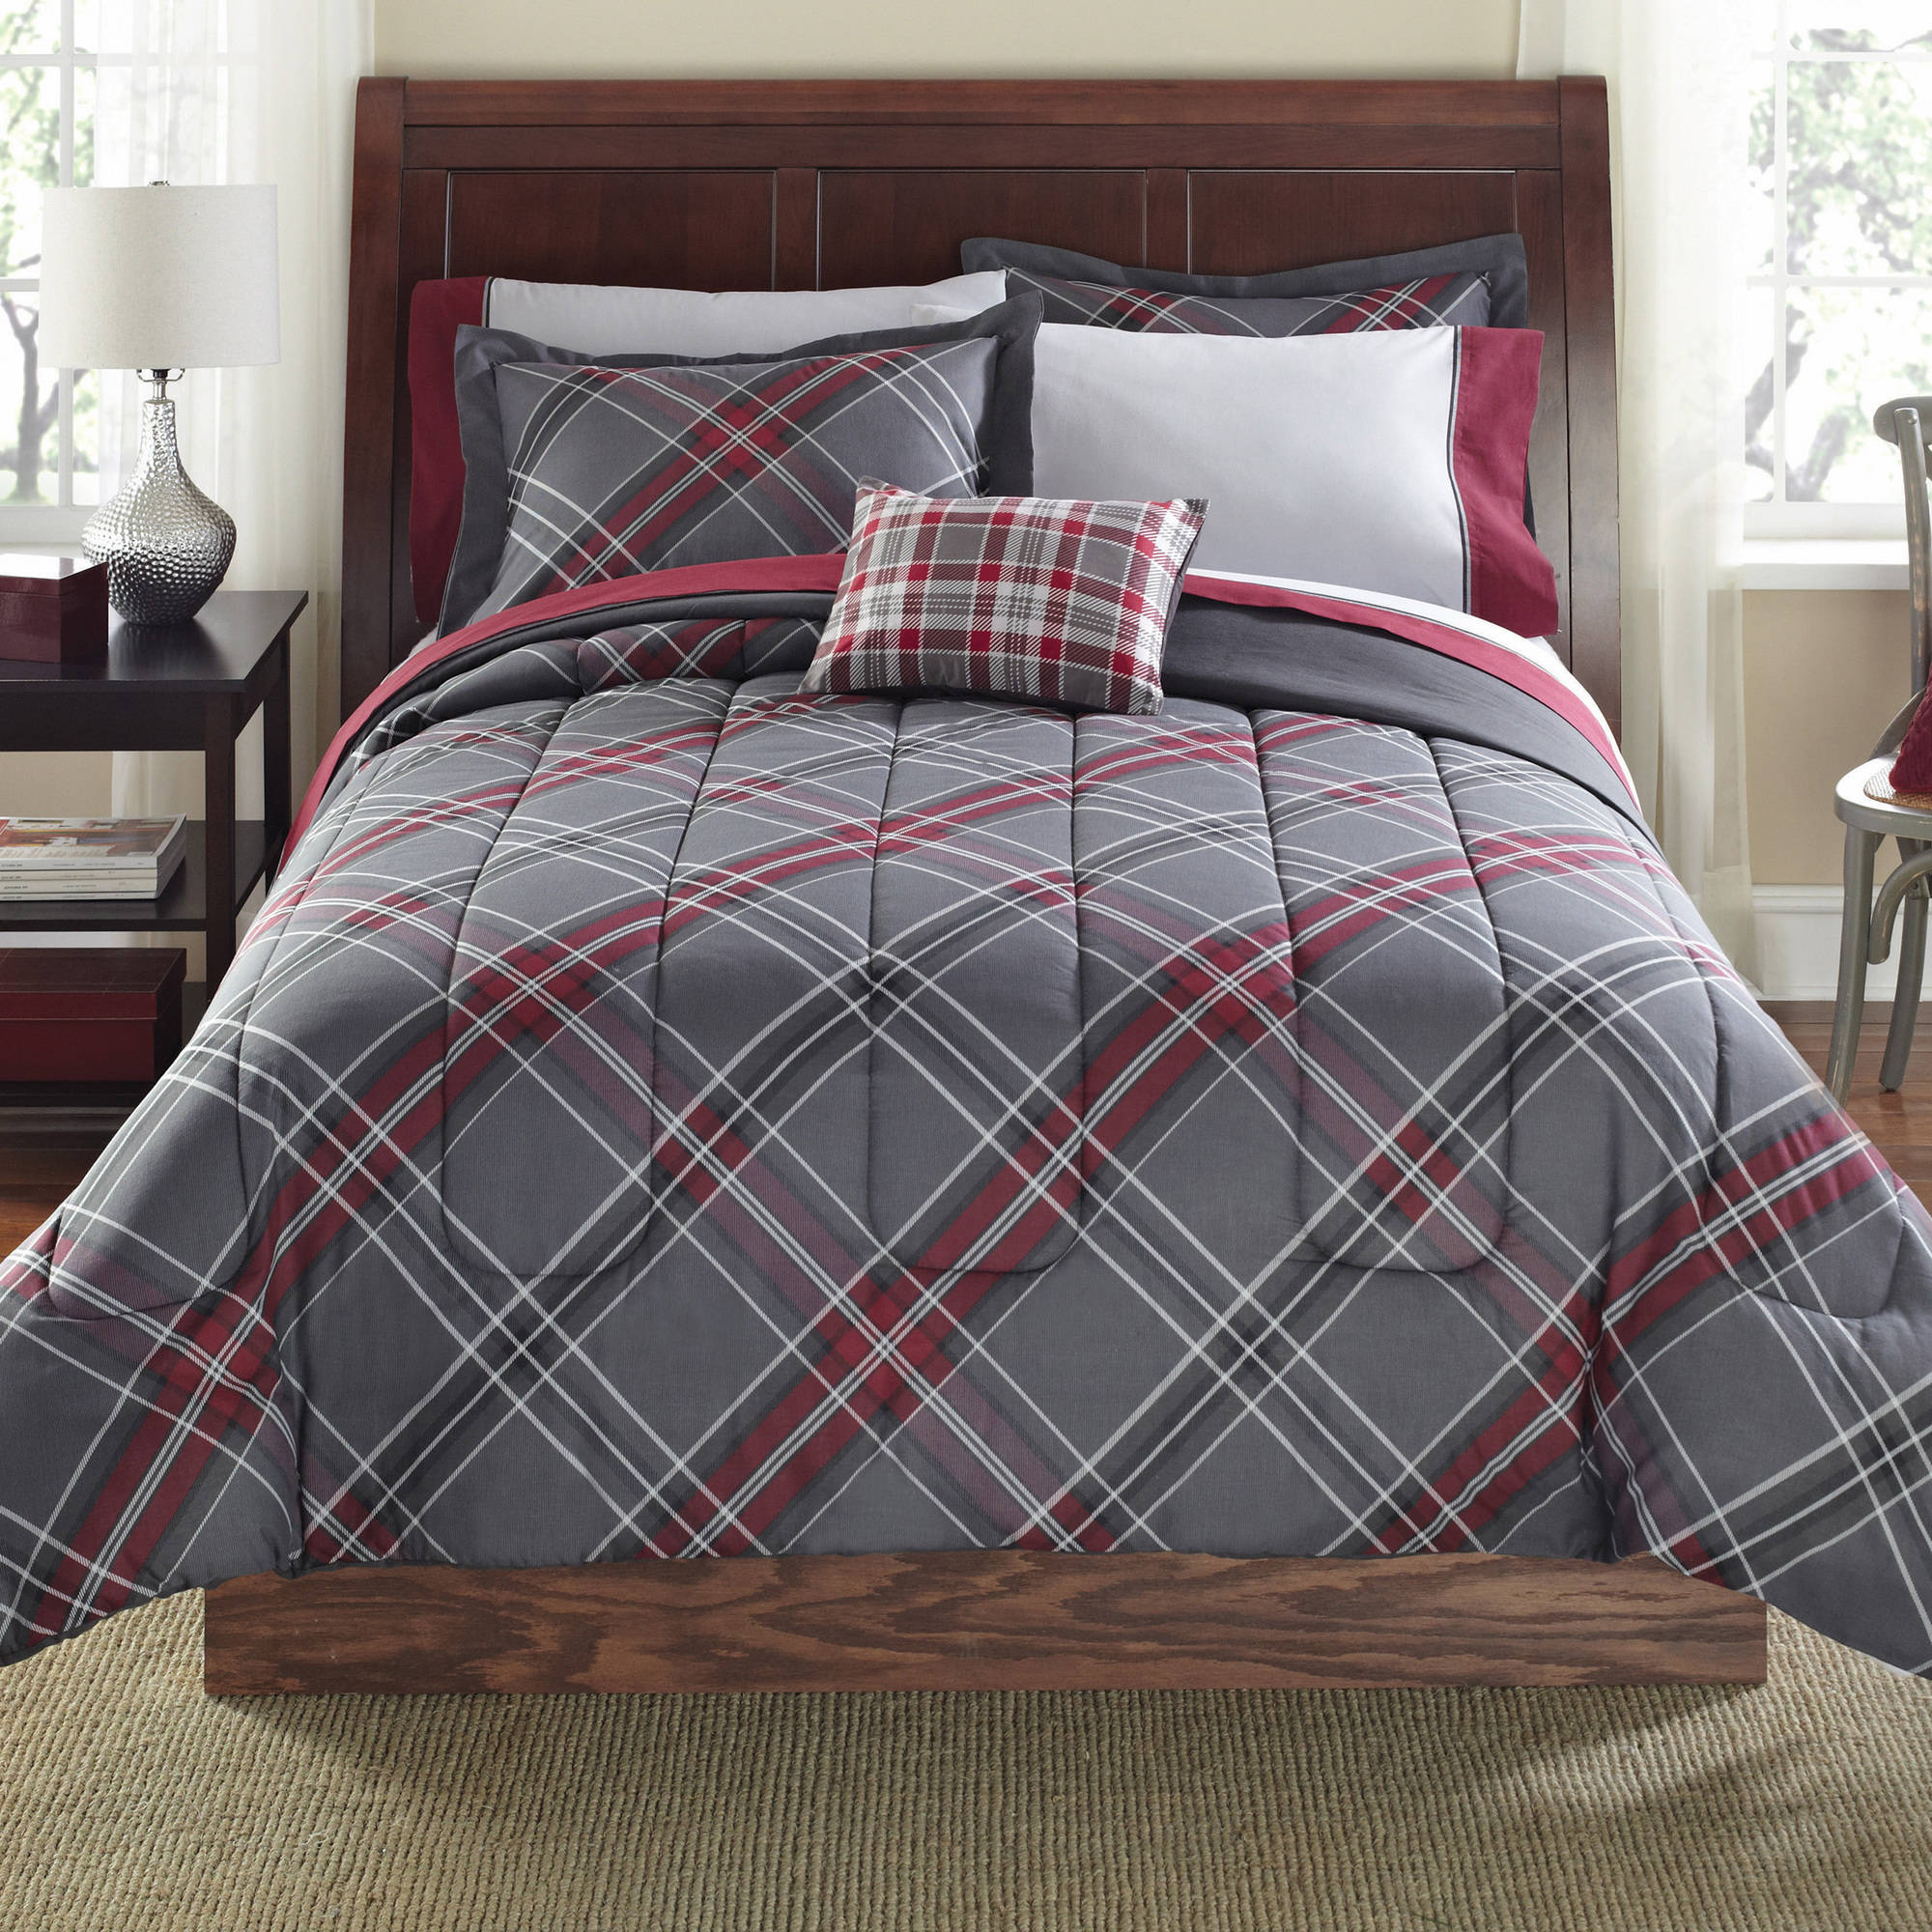 buffalo comforter full set grey plaid red flannel blue duvet cover kohphiphi size info page